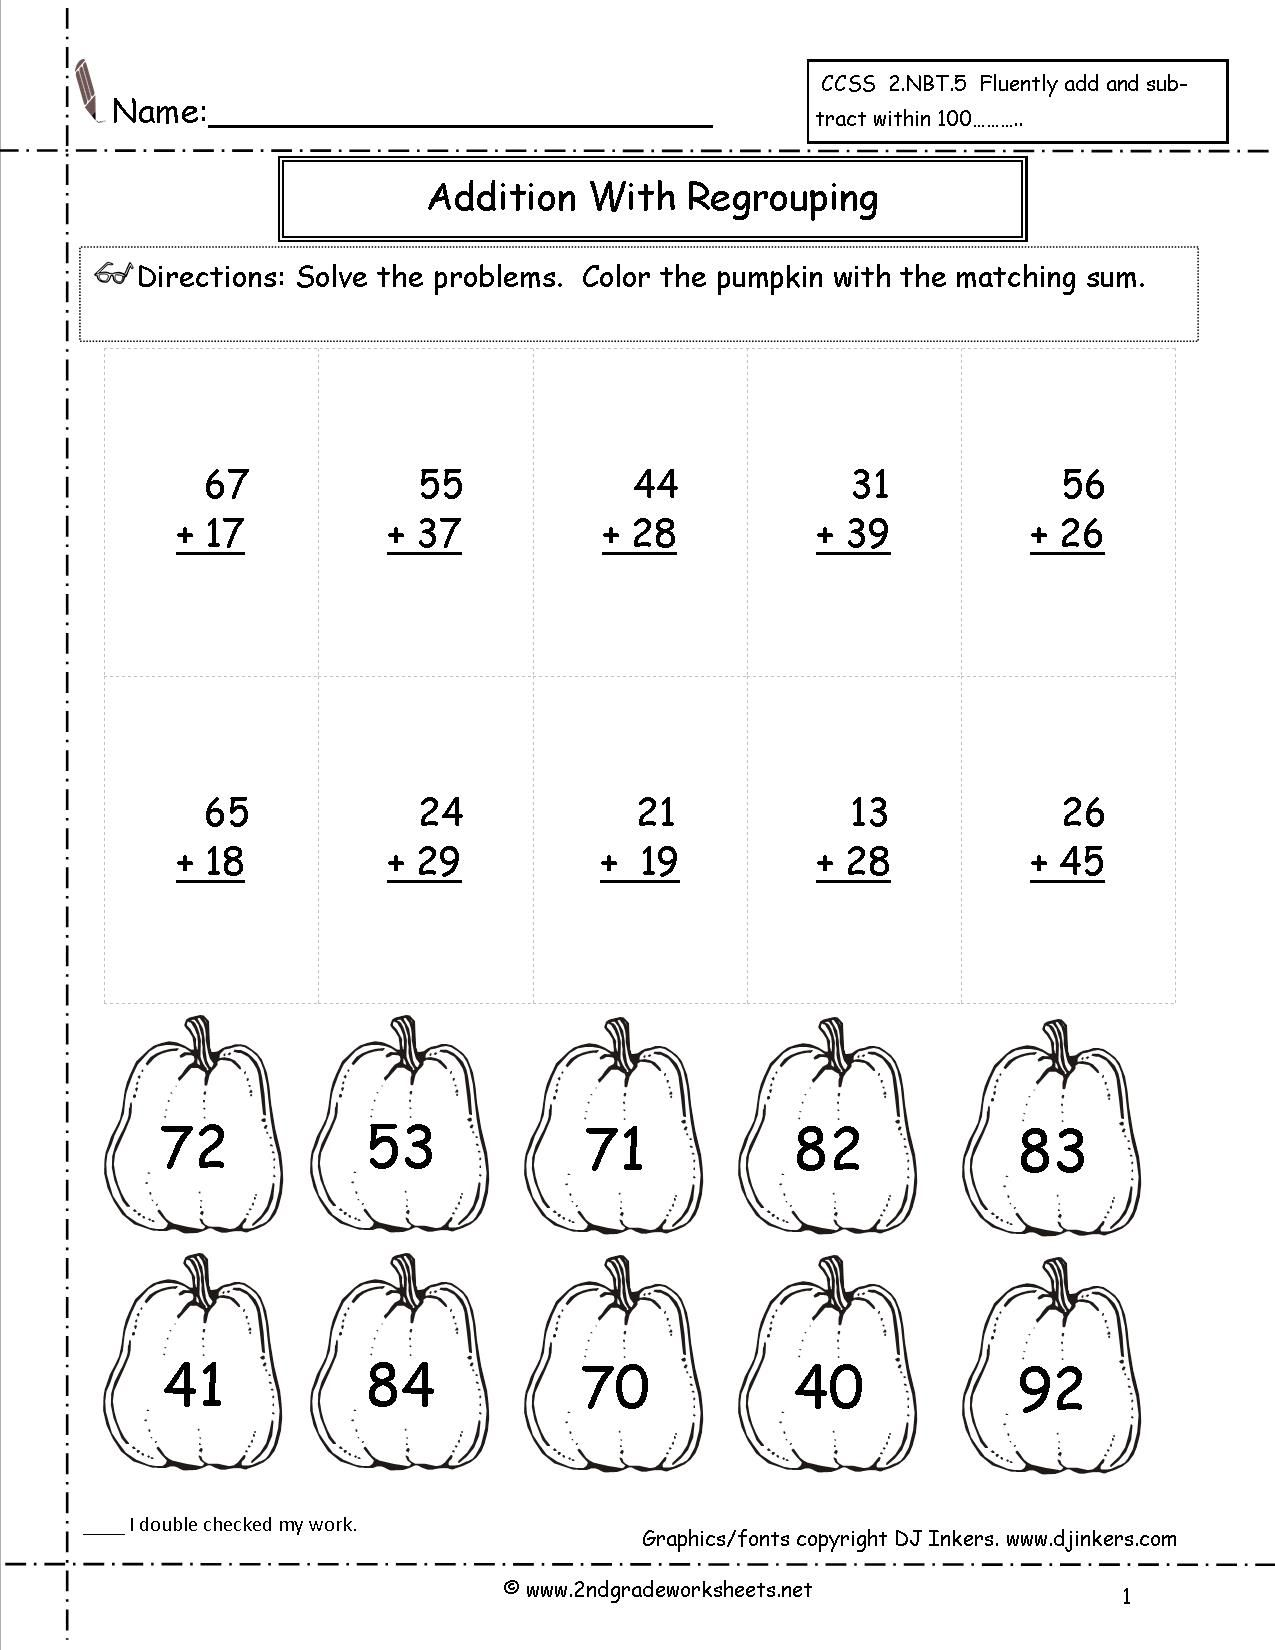 DoubleDigit Addition Coloring Worksheets – Adding Two Digit Numbers with Regrouping Worksheets